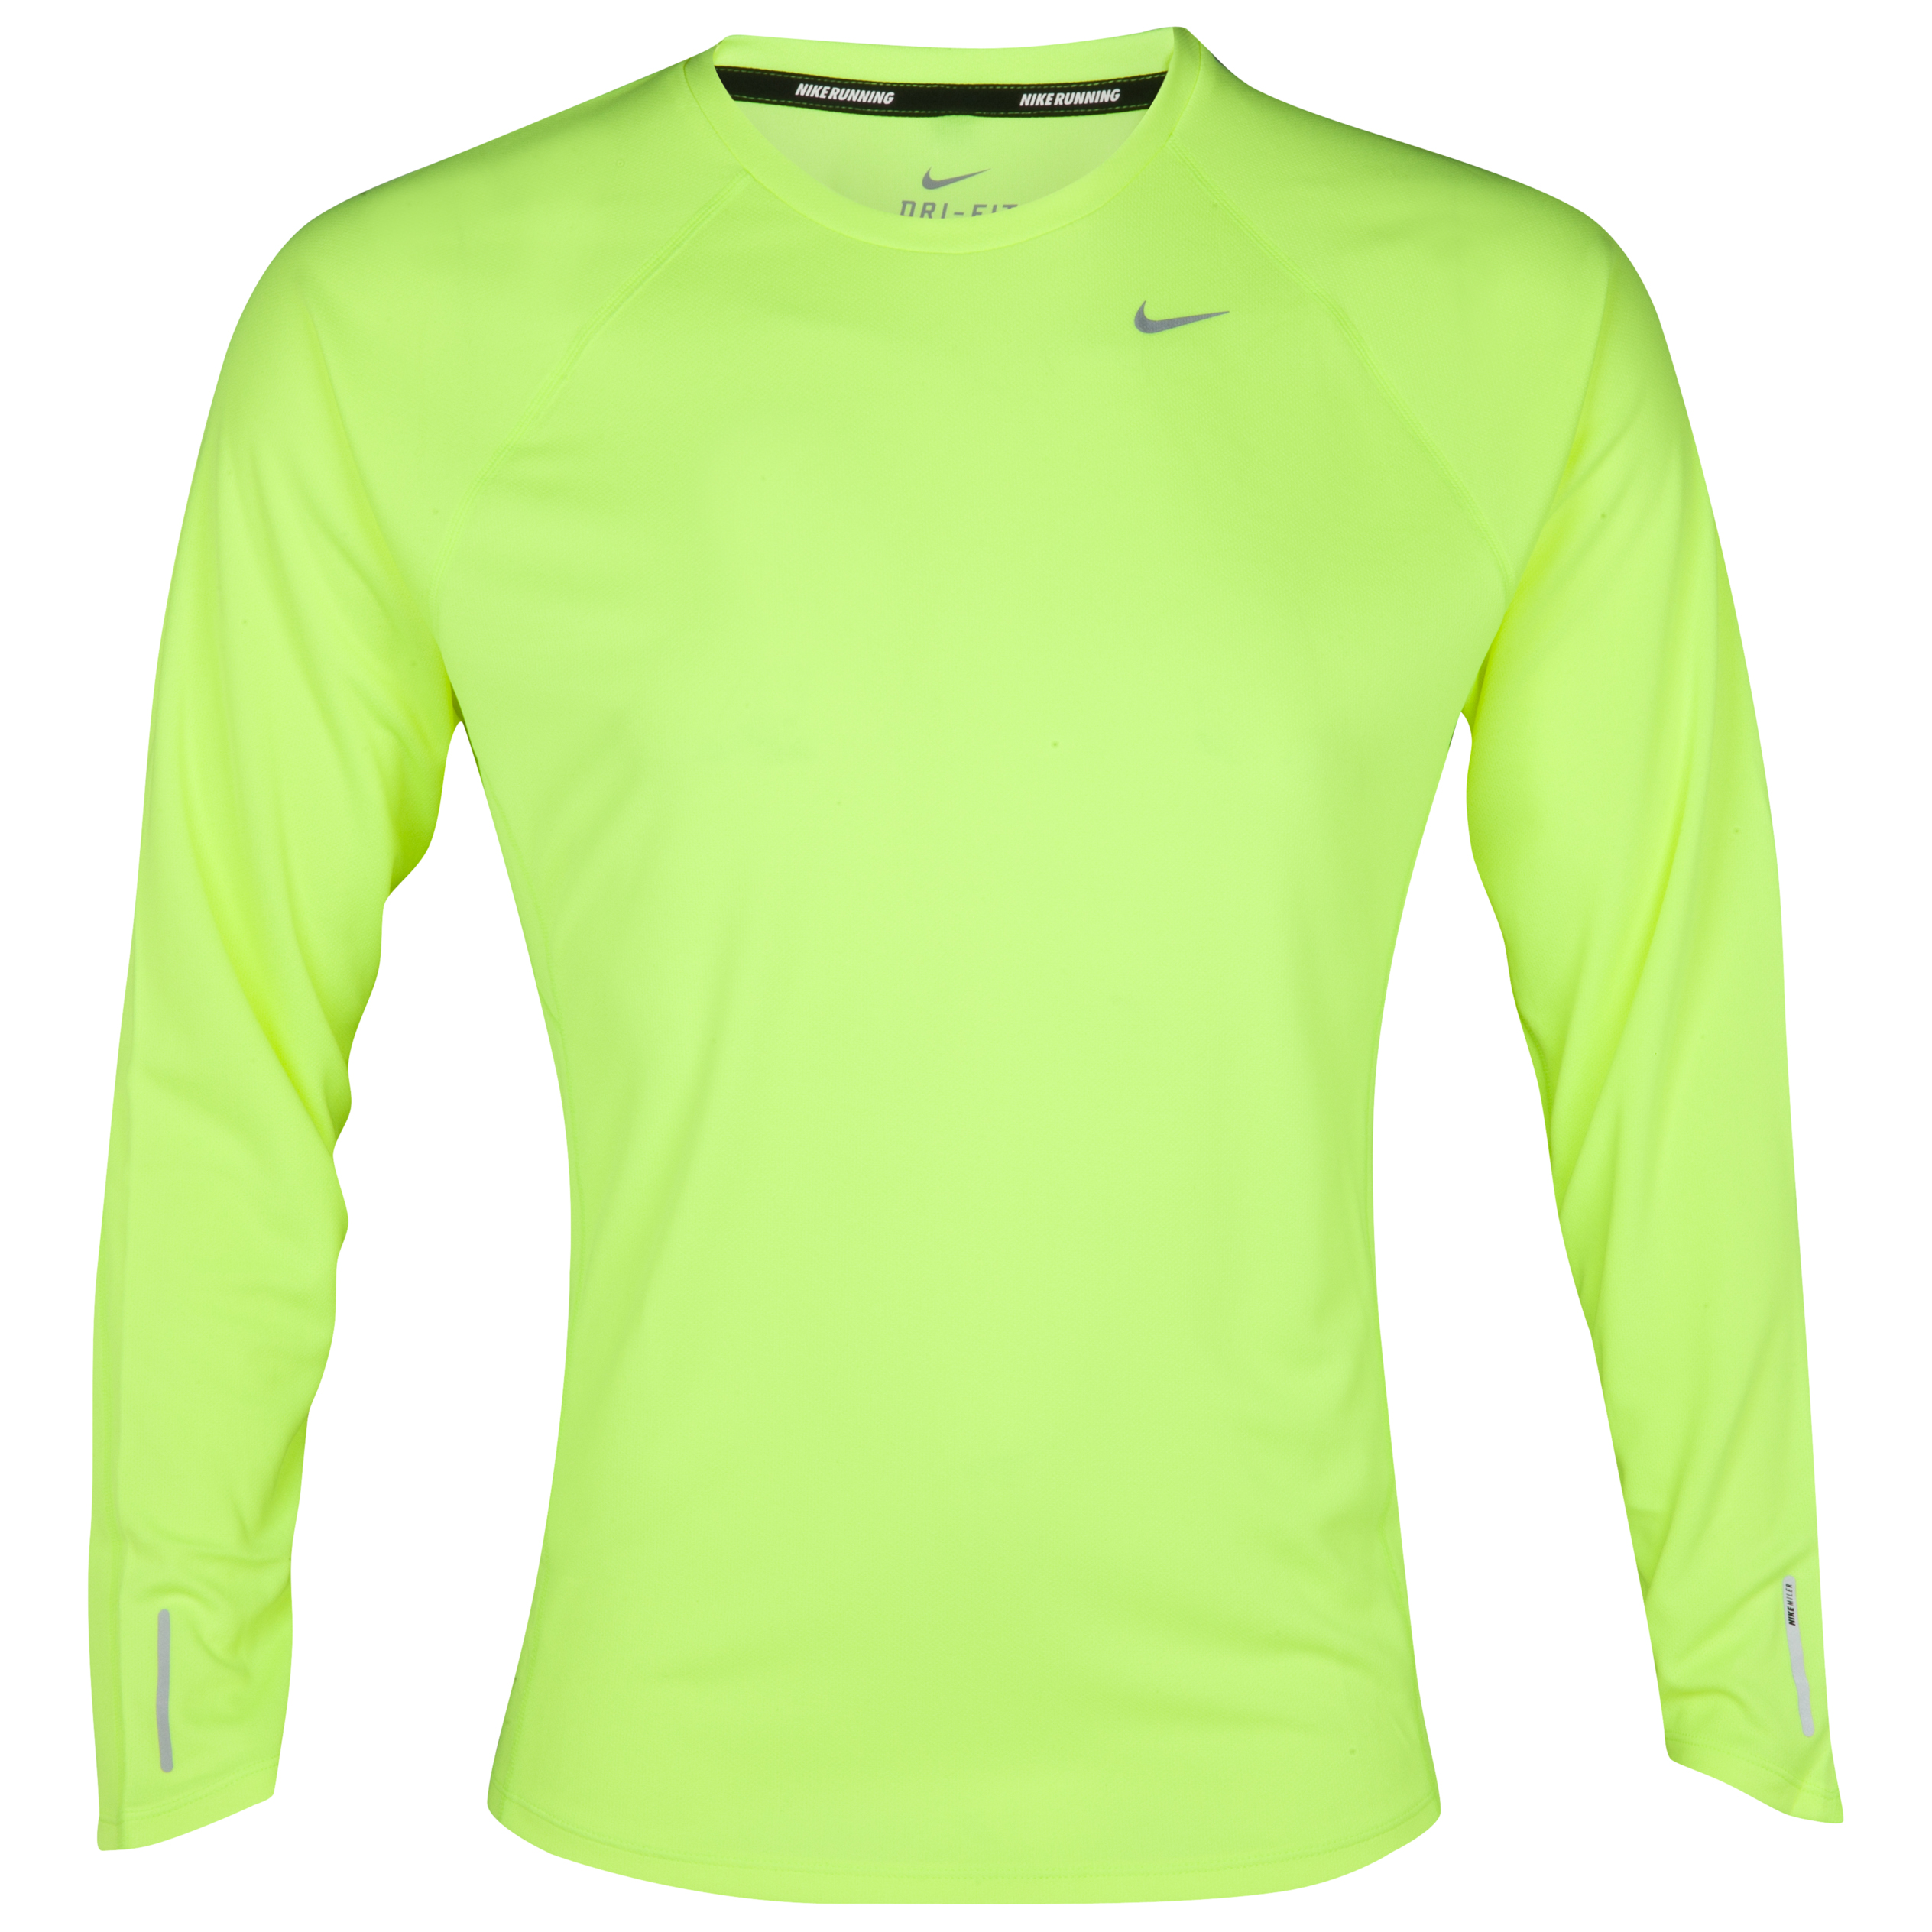 Nike Miler UV Team T-Shirt - Volt/Reflective Silver - Long Sleeve